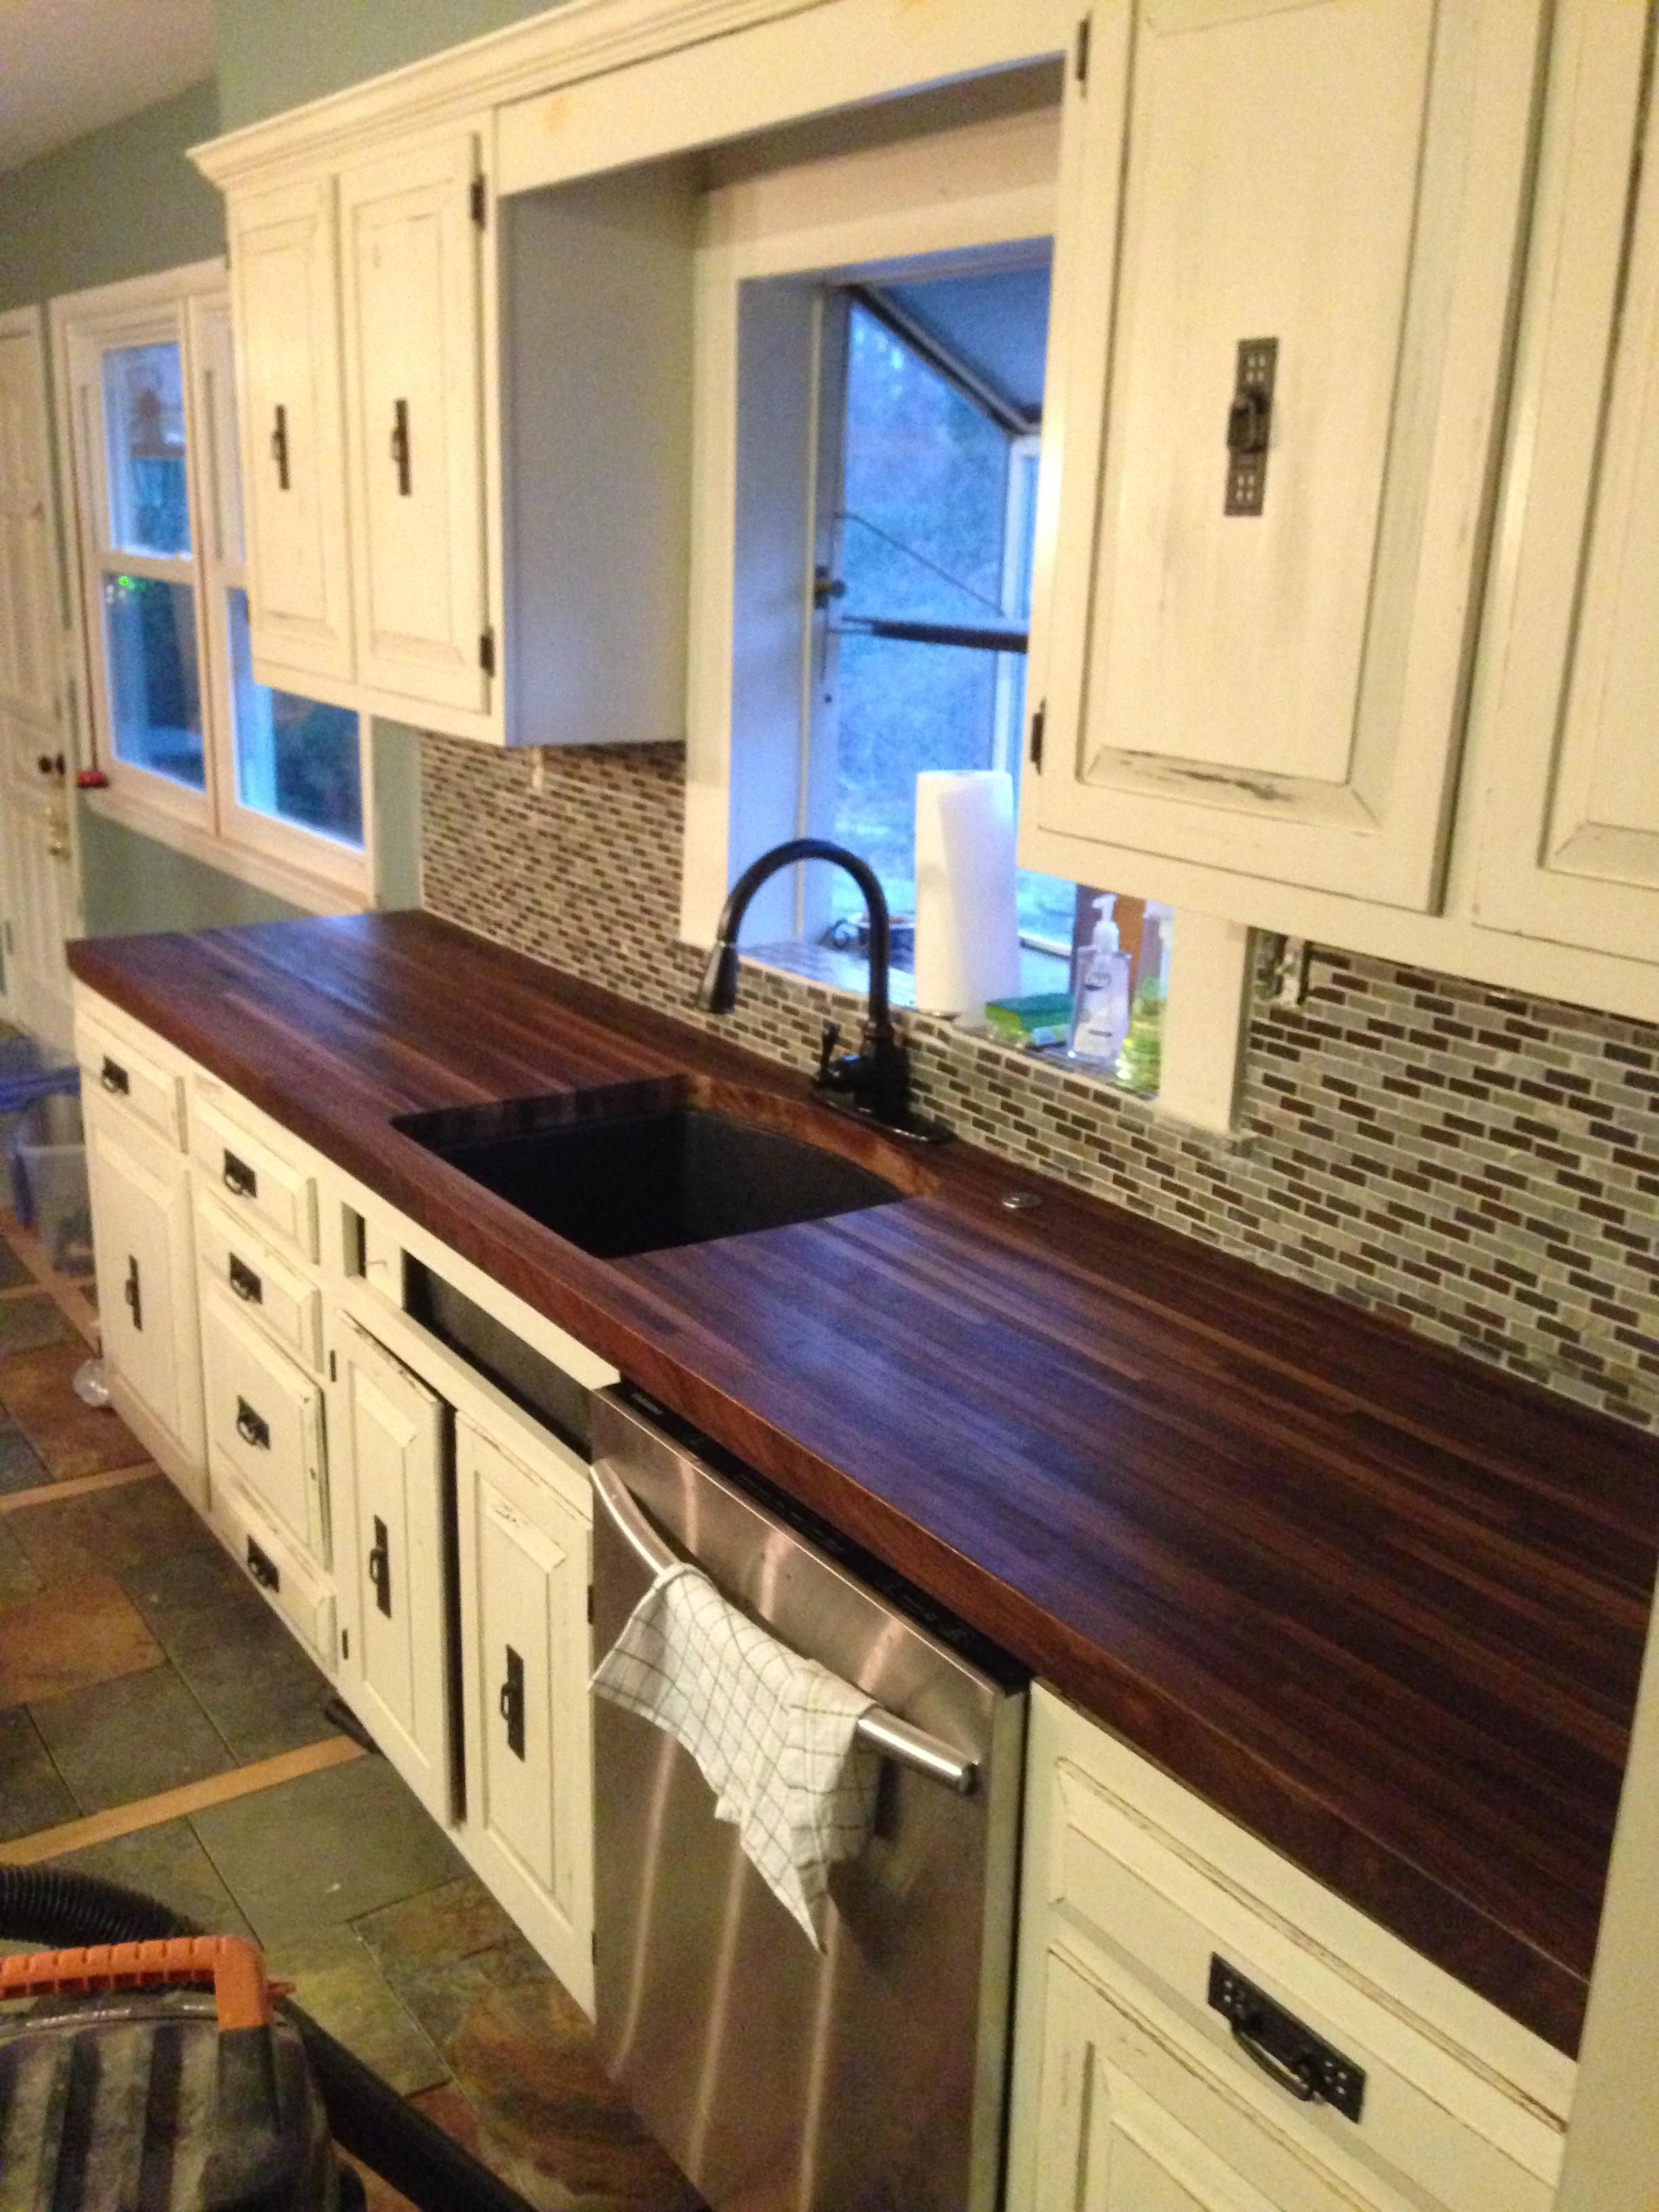 Diy Black Walnut Butcher Block Countertops To Replace That Awful